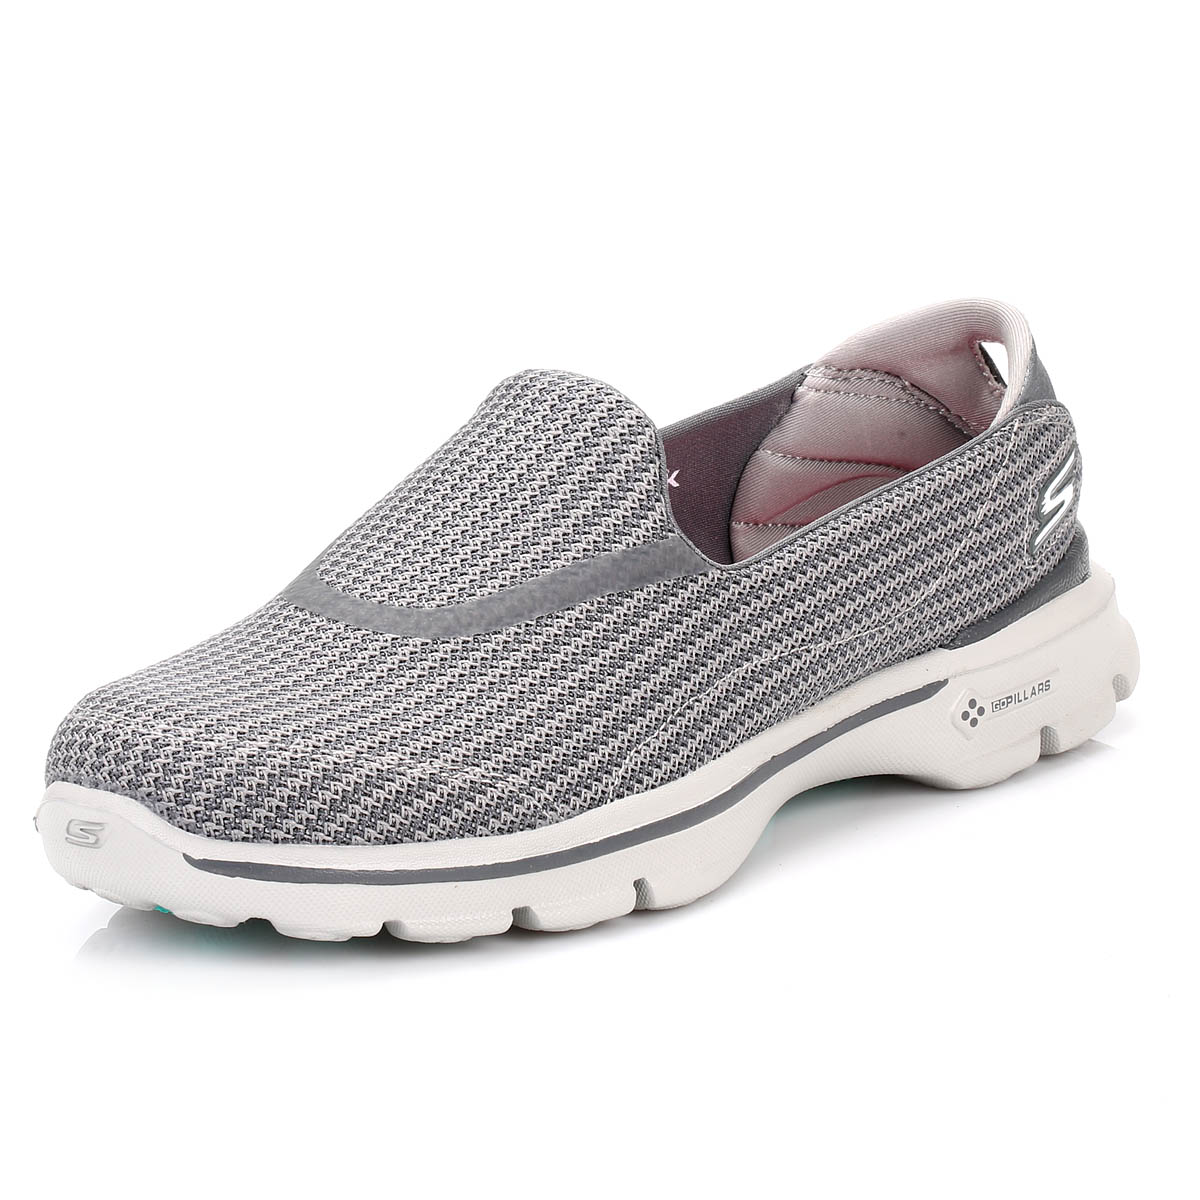 502c15dc59a0 Skechers Womens Trainers Charcoal Grey Go Walk 3 Slip On Sport ...